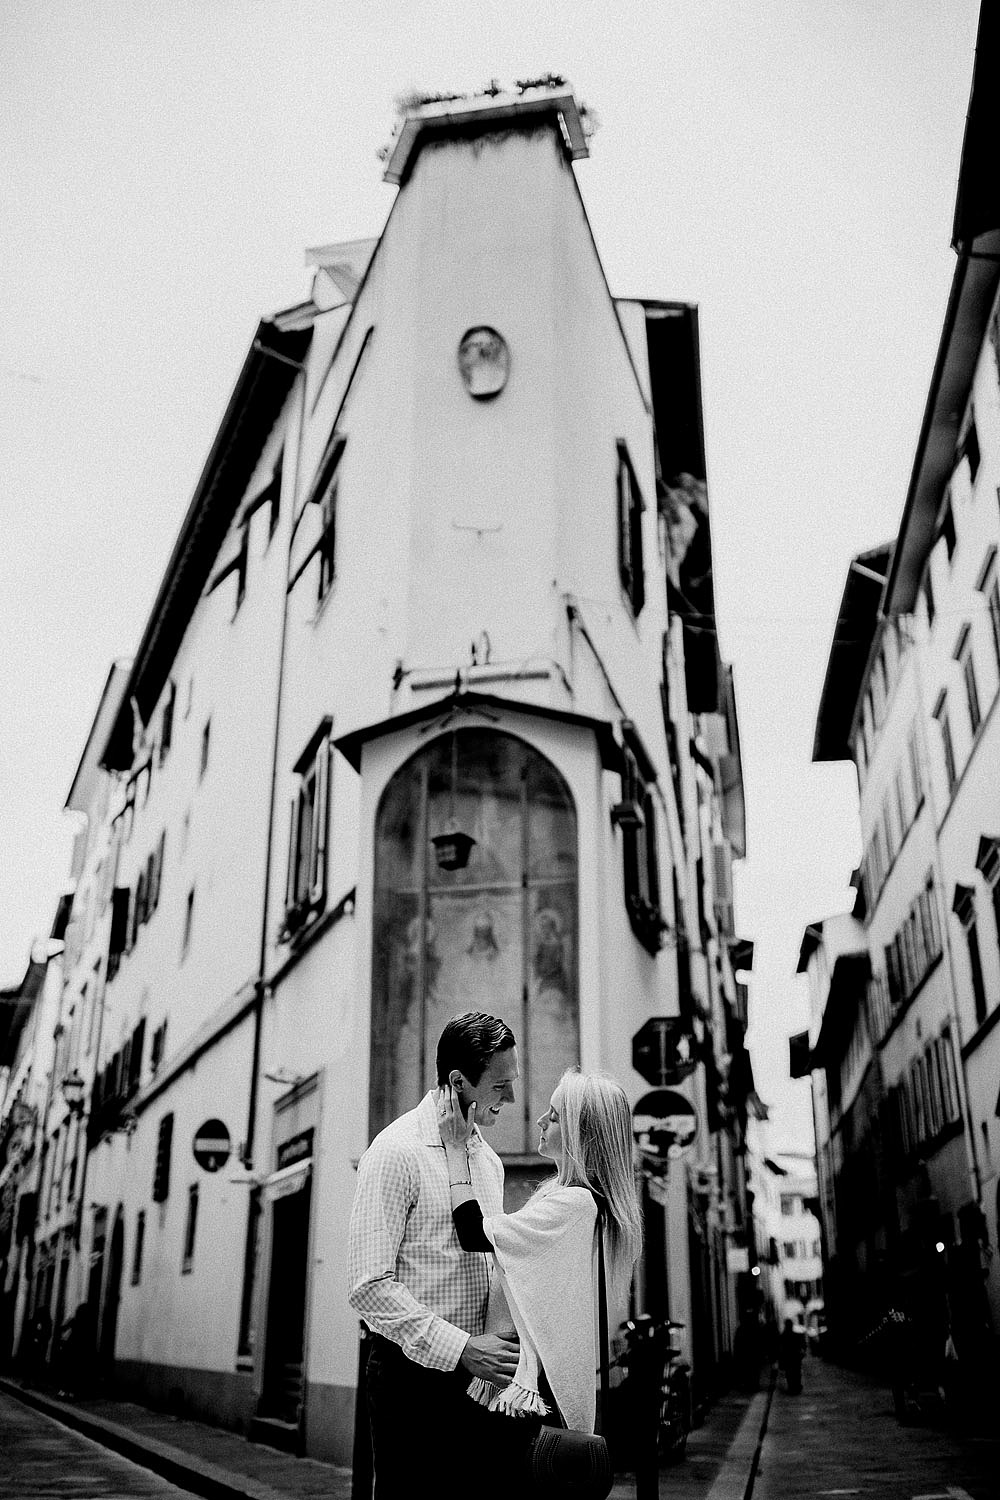 LUNA DI MIELE NEL CENTRO STORICO DI FIRENZE TOSCANA :: Luxury wedding photography - 4